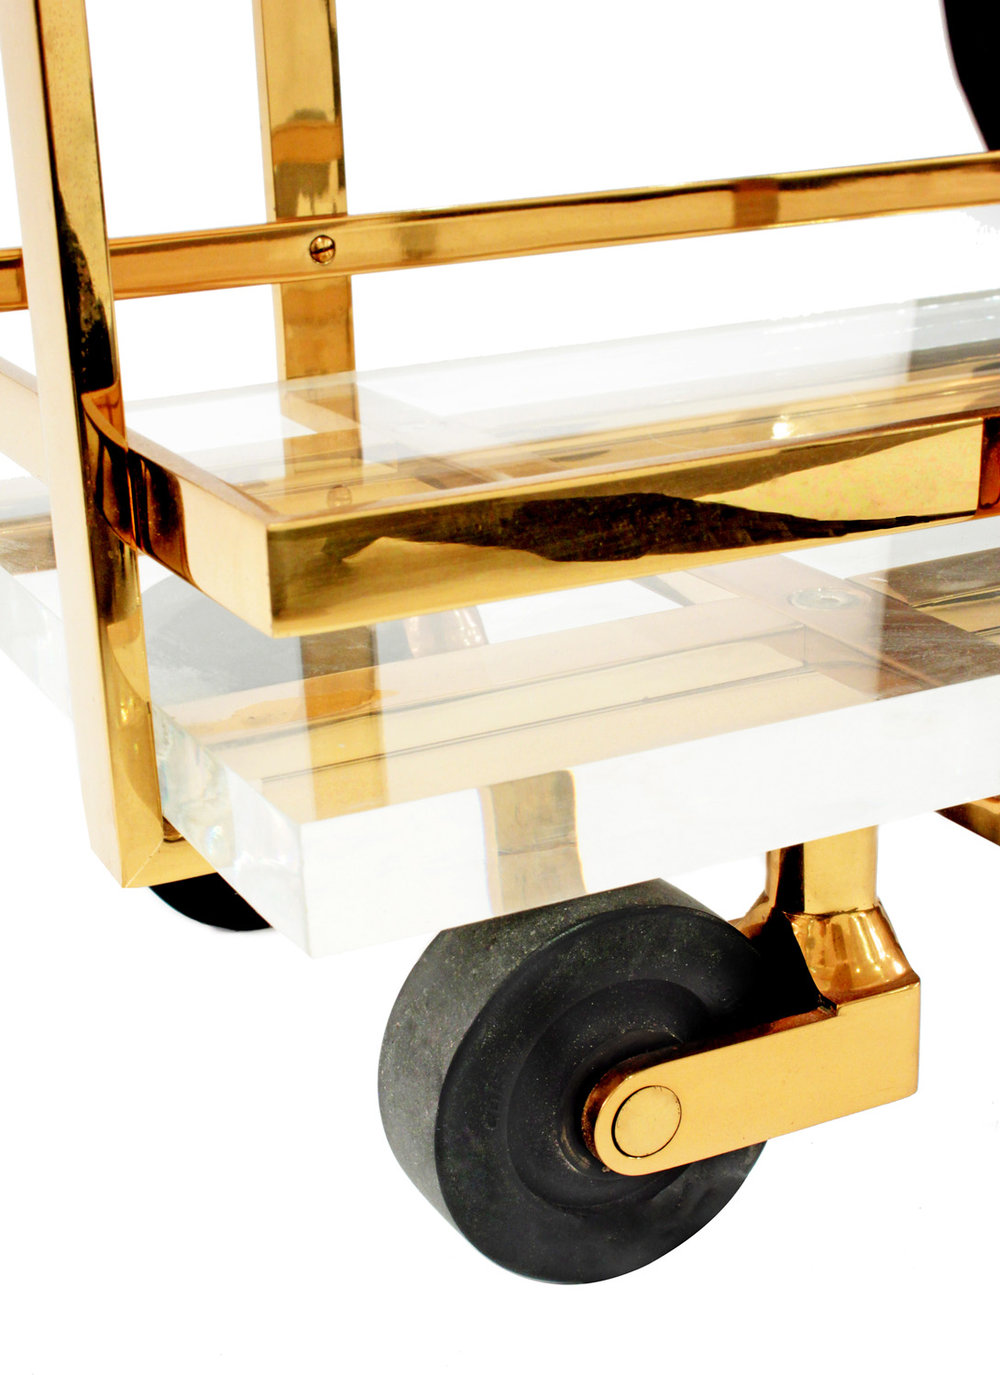 Springer 75 lucite + brass tv sta table9 hires detail 3.jpg